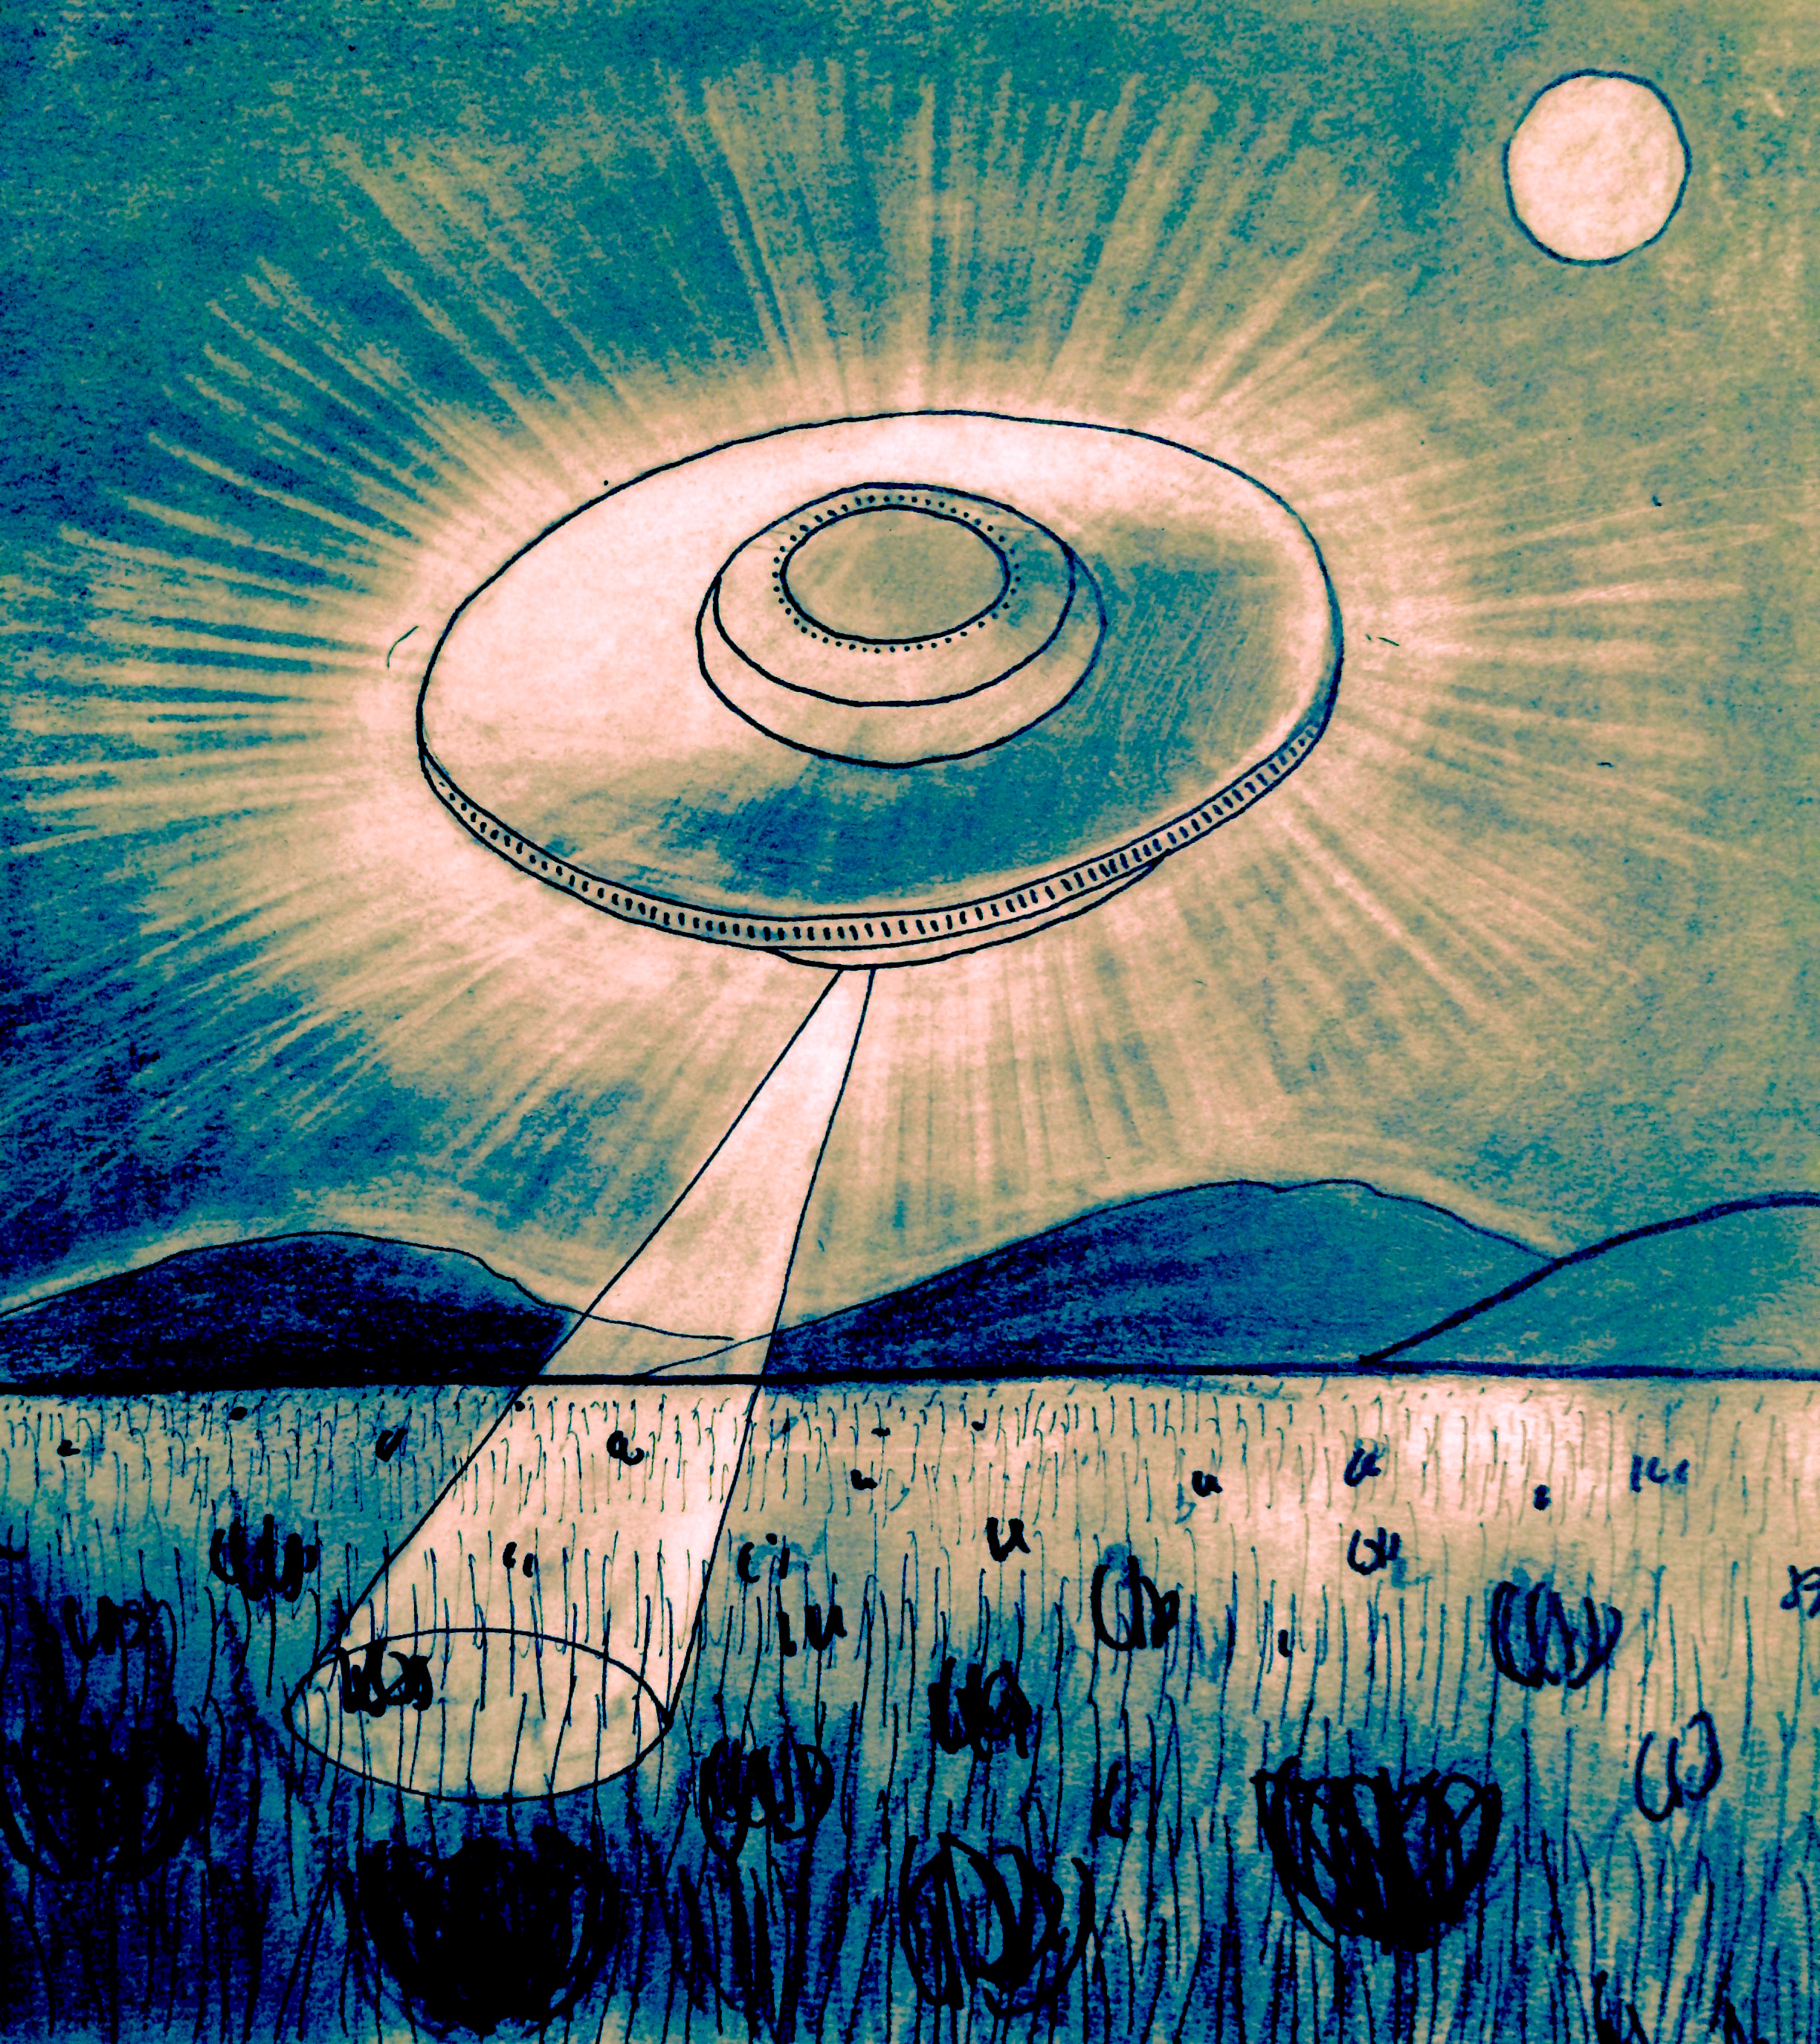 Arcturian to Alien Abductee